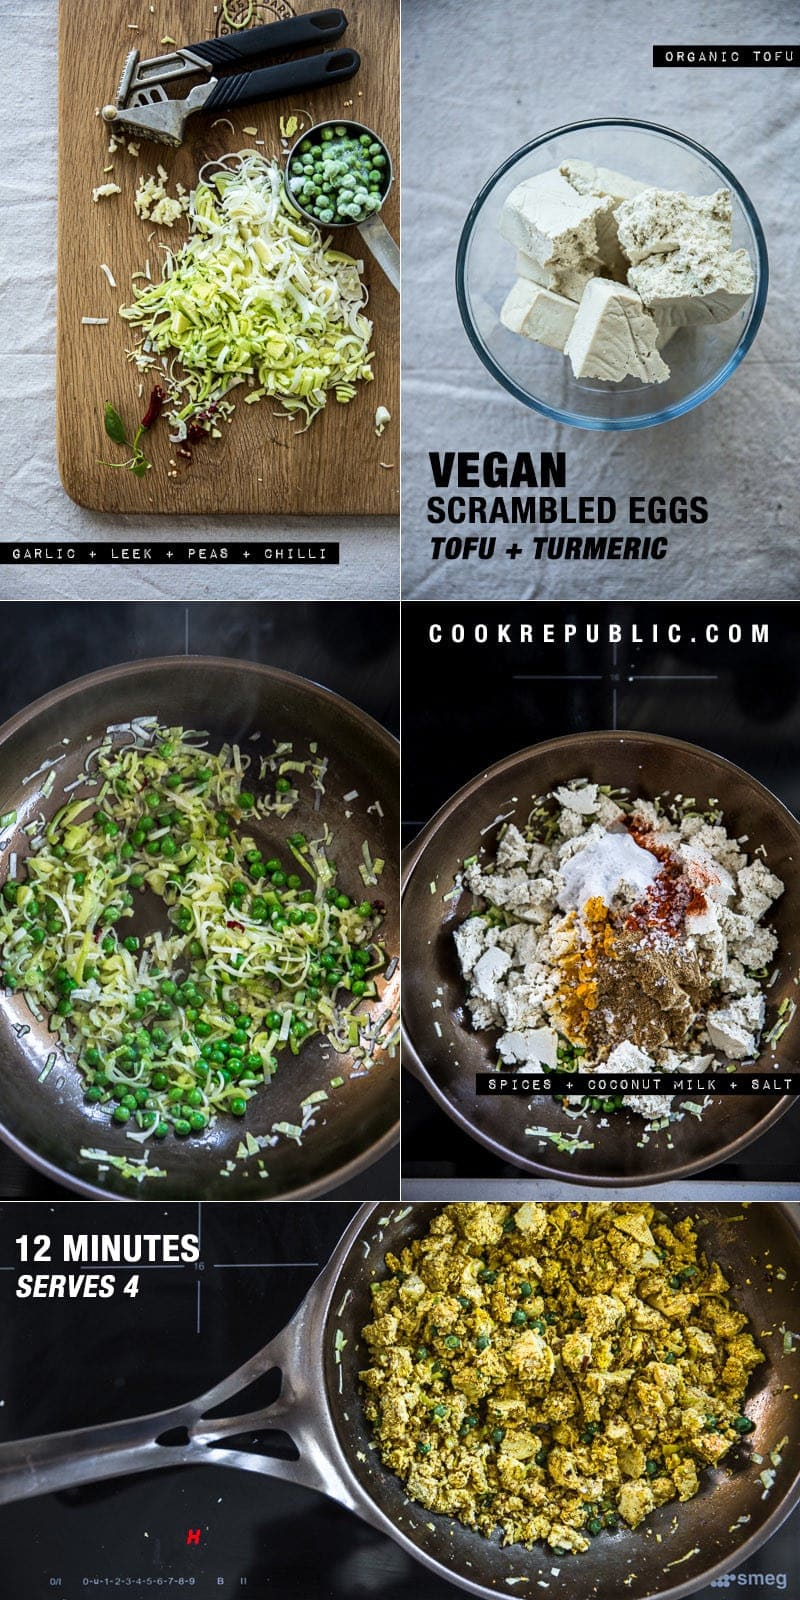 Vegan Scrambled Spice Eggs - Cook Republic